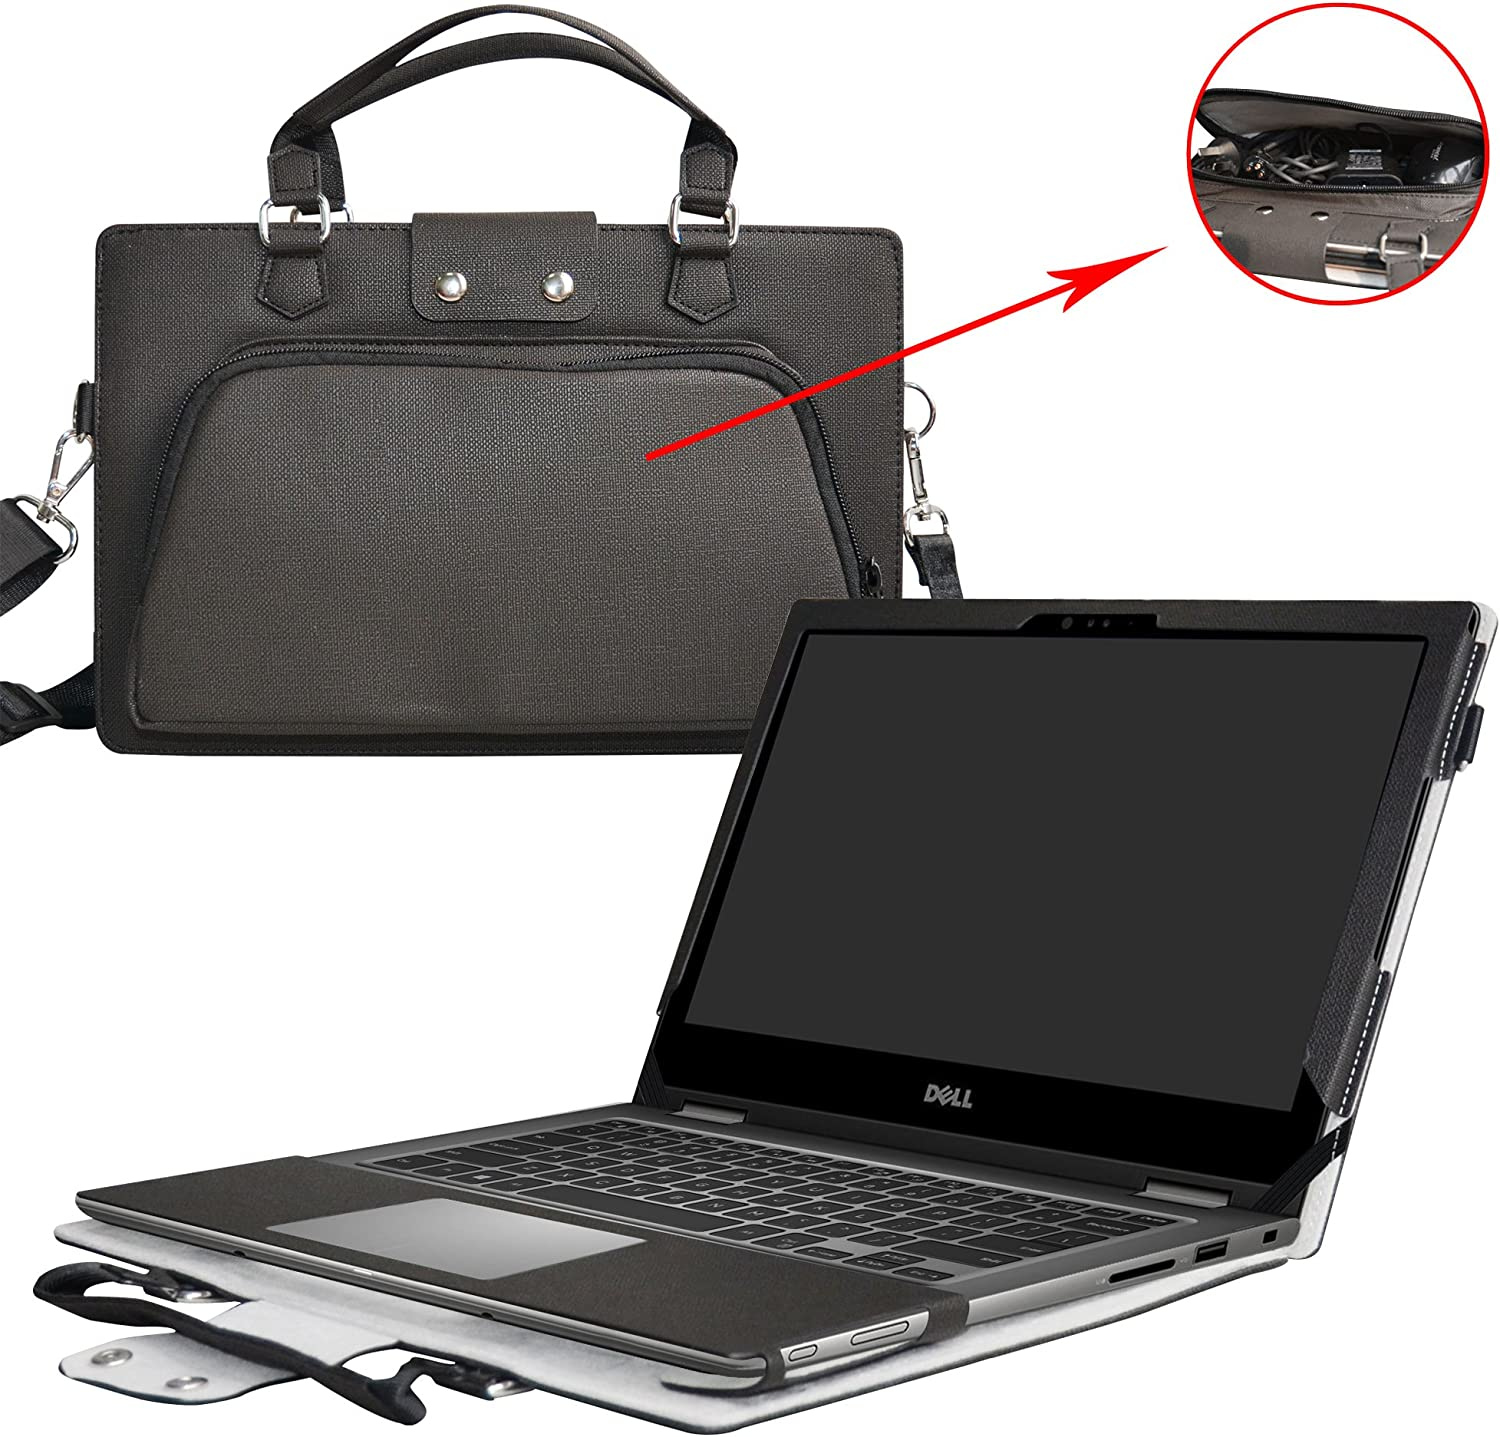 """Inspiron 13 2-in-1 i7378 i7375 i7368 Case,2 in 1 Accurately Designed Protective PU Leather Cover + Portable Carrying Bag for 13.3"""" Dell Inspiron 13 2-in-1 7000 Series 7378 7375 7368 Laptop,Black"""